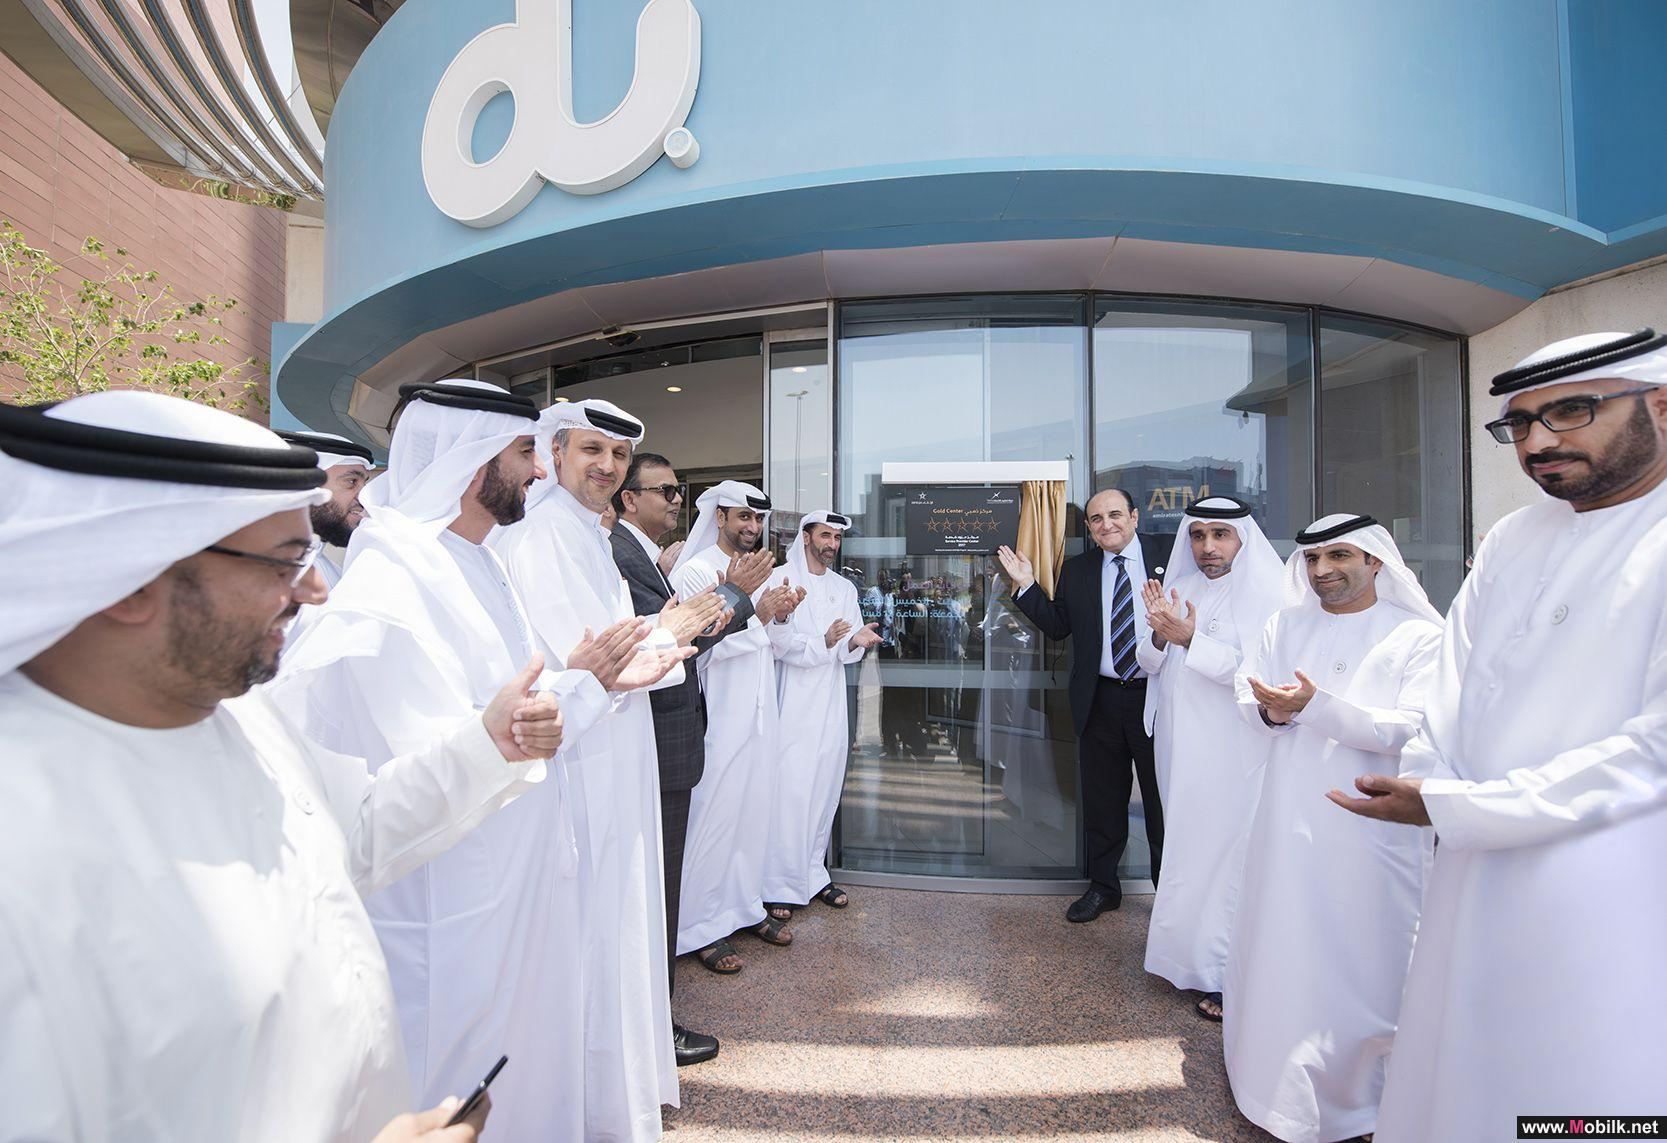 du Customer Service Centre Awarded TRA 5 Star Gold Rating